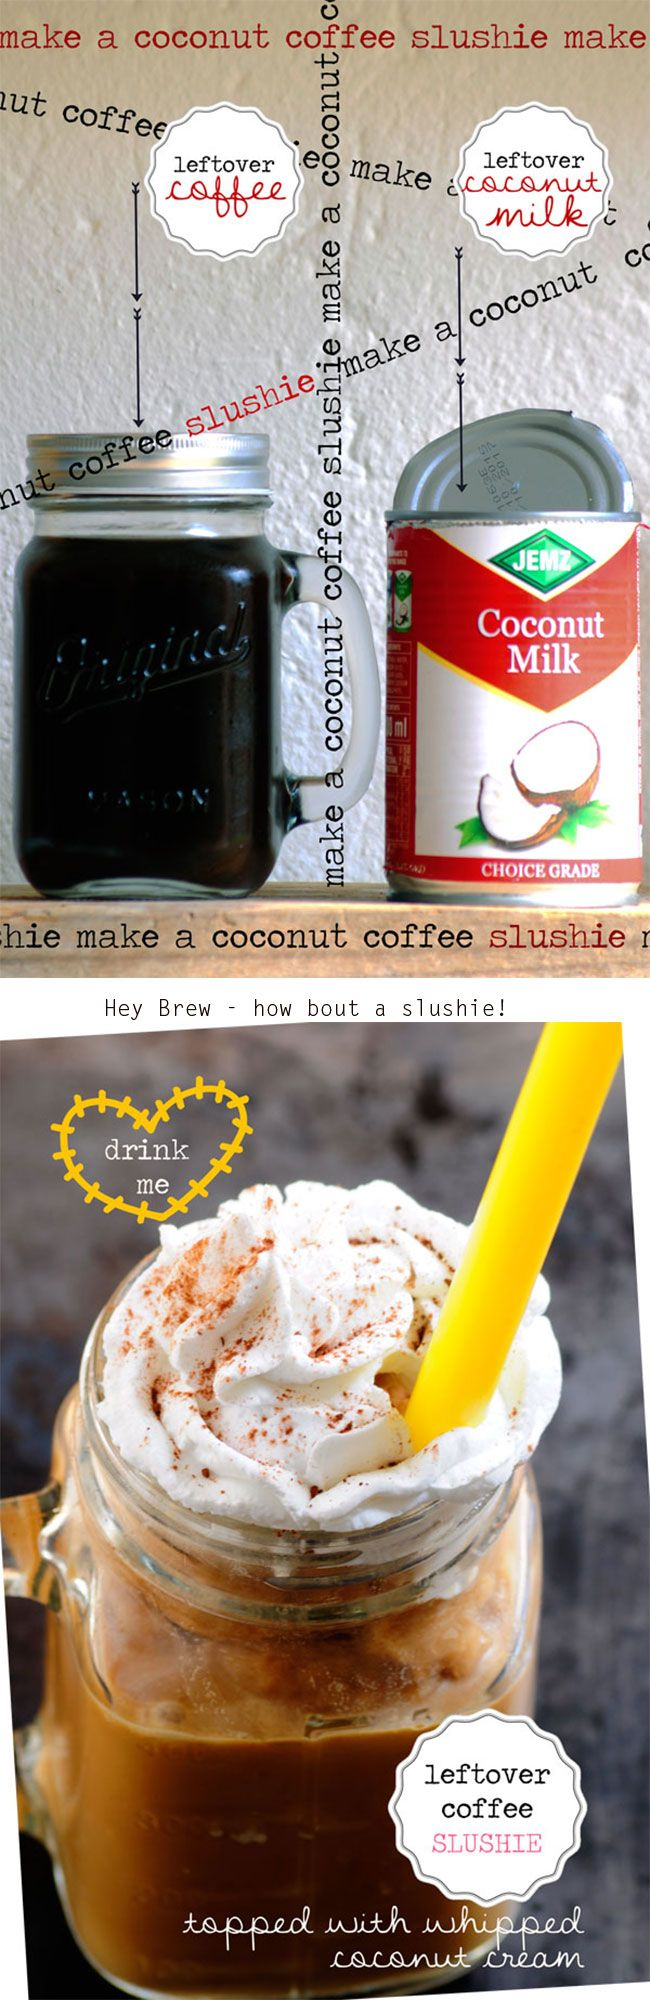 Have a bit of leftover brew in the plunger? Save it for a yummy Coffee Coconut Slushie! Slurp me now!